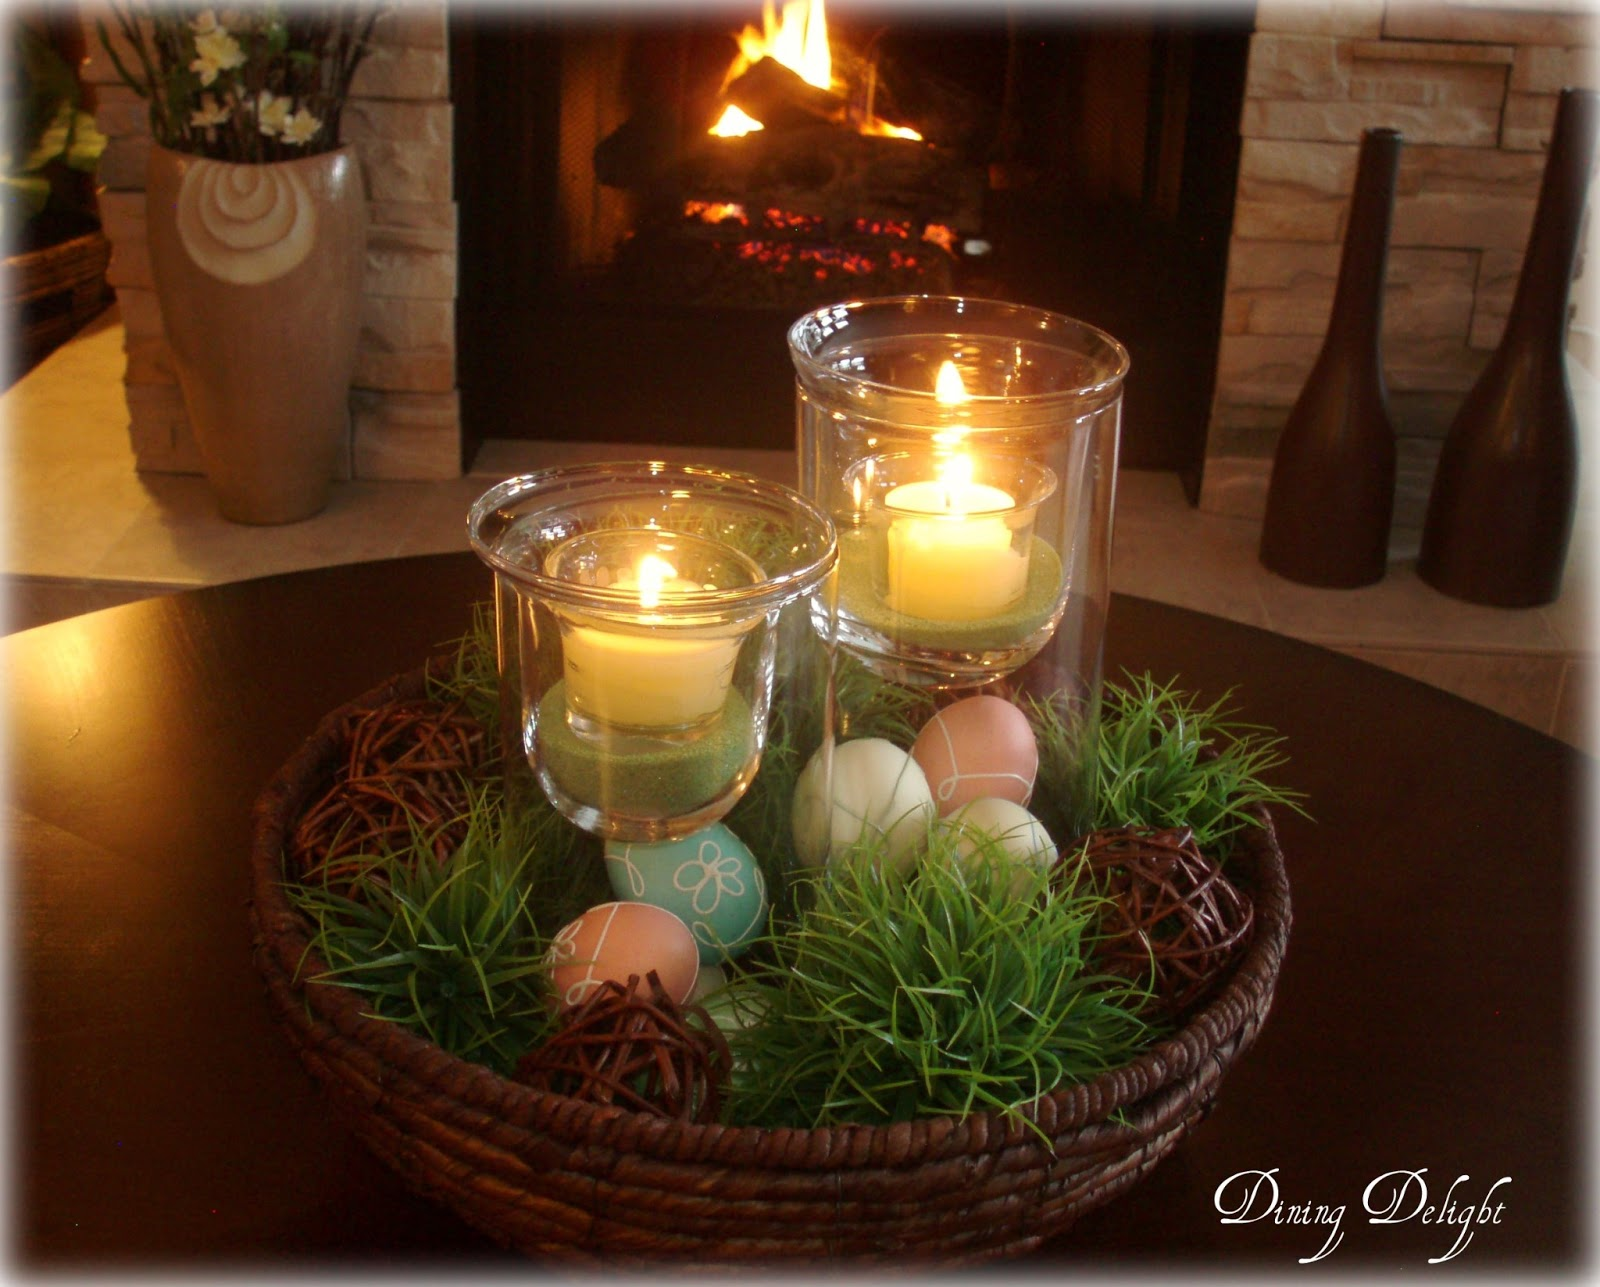 Dining Delight: Summer Centerpiece for the Coffee Table